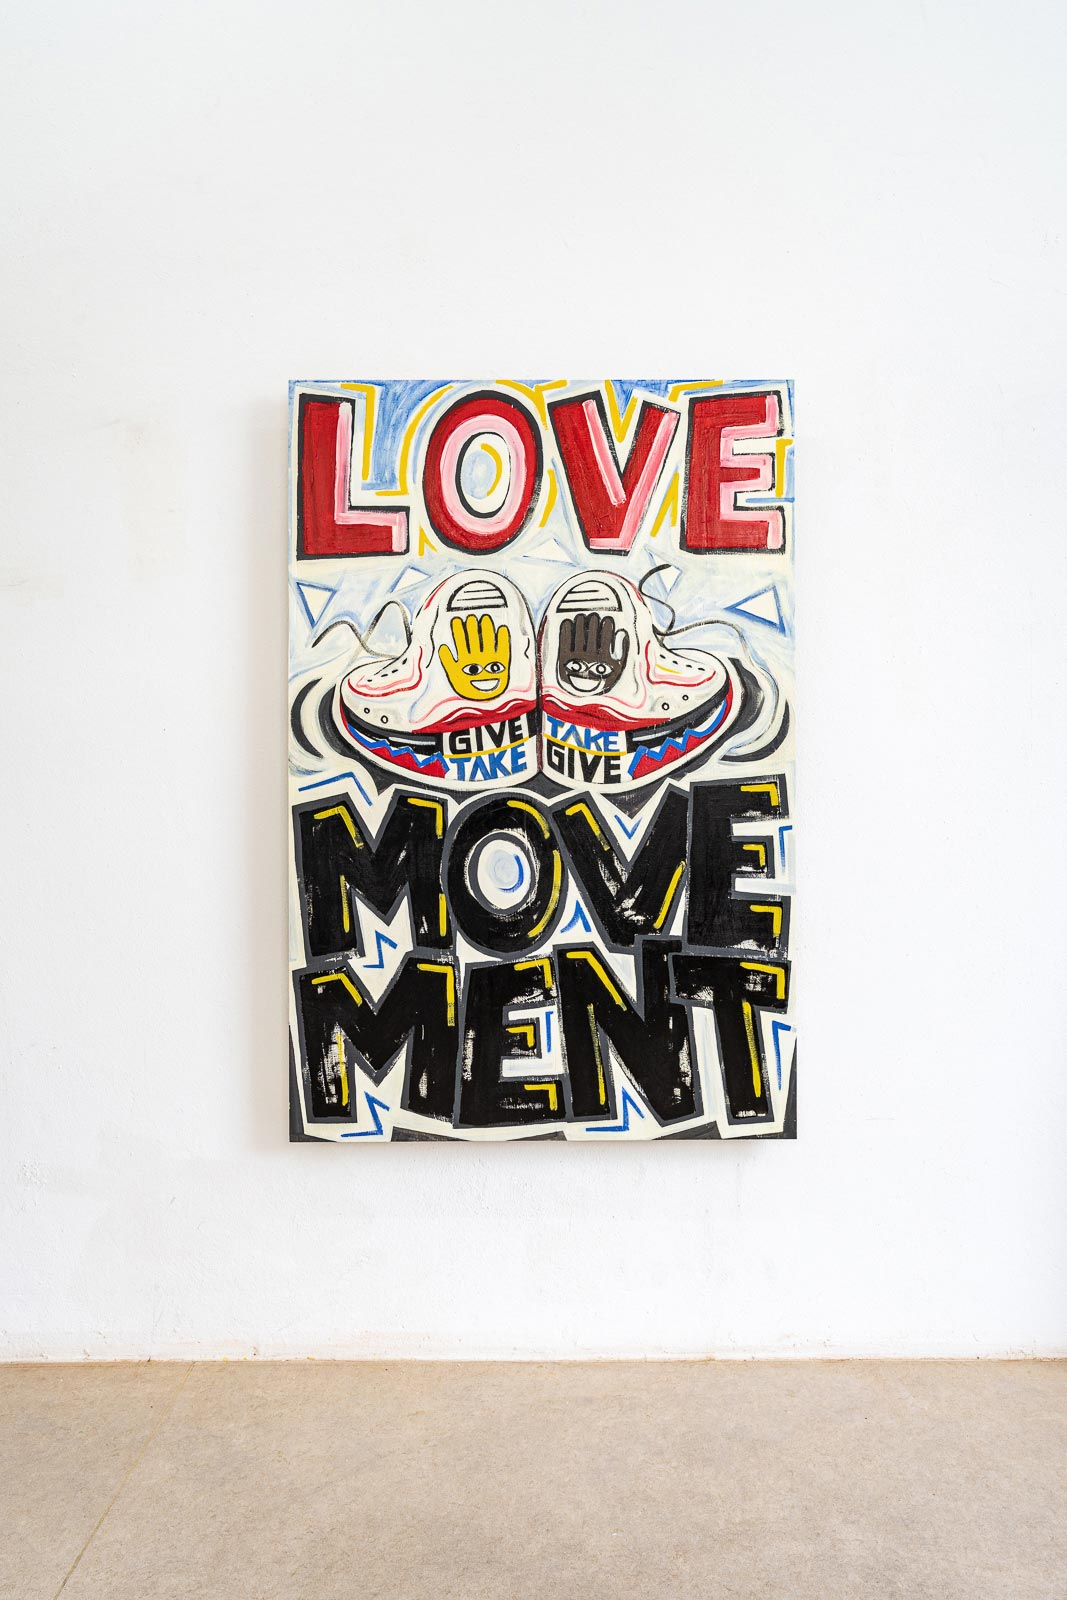 Pierre von Helden – Malerei – Love Movement